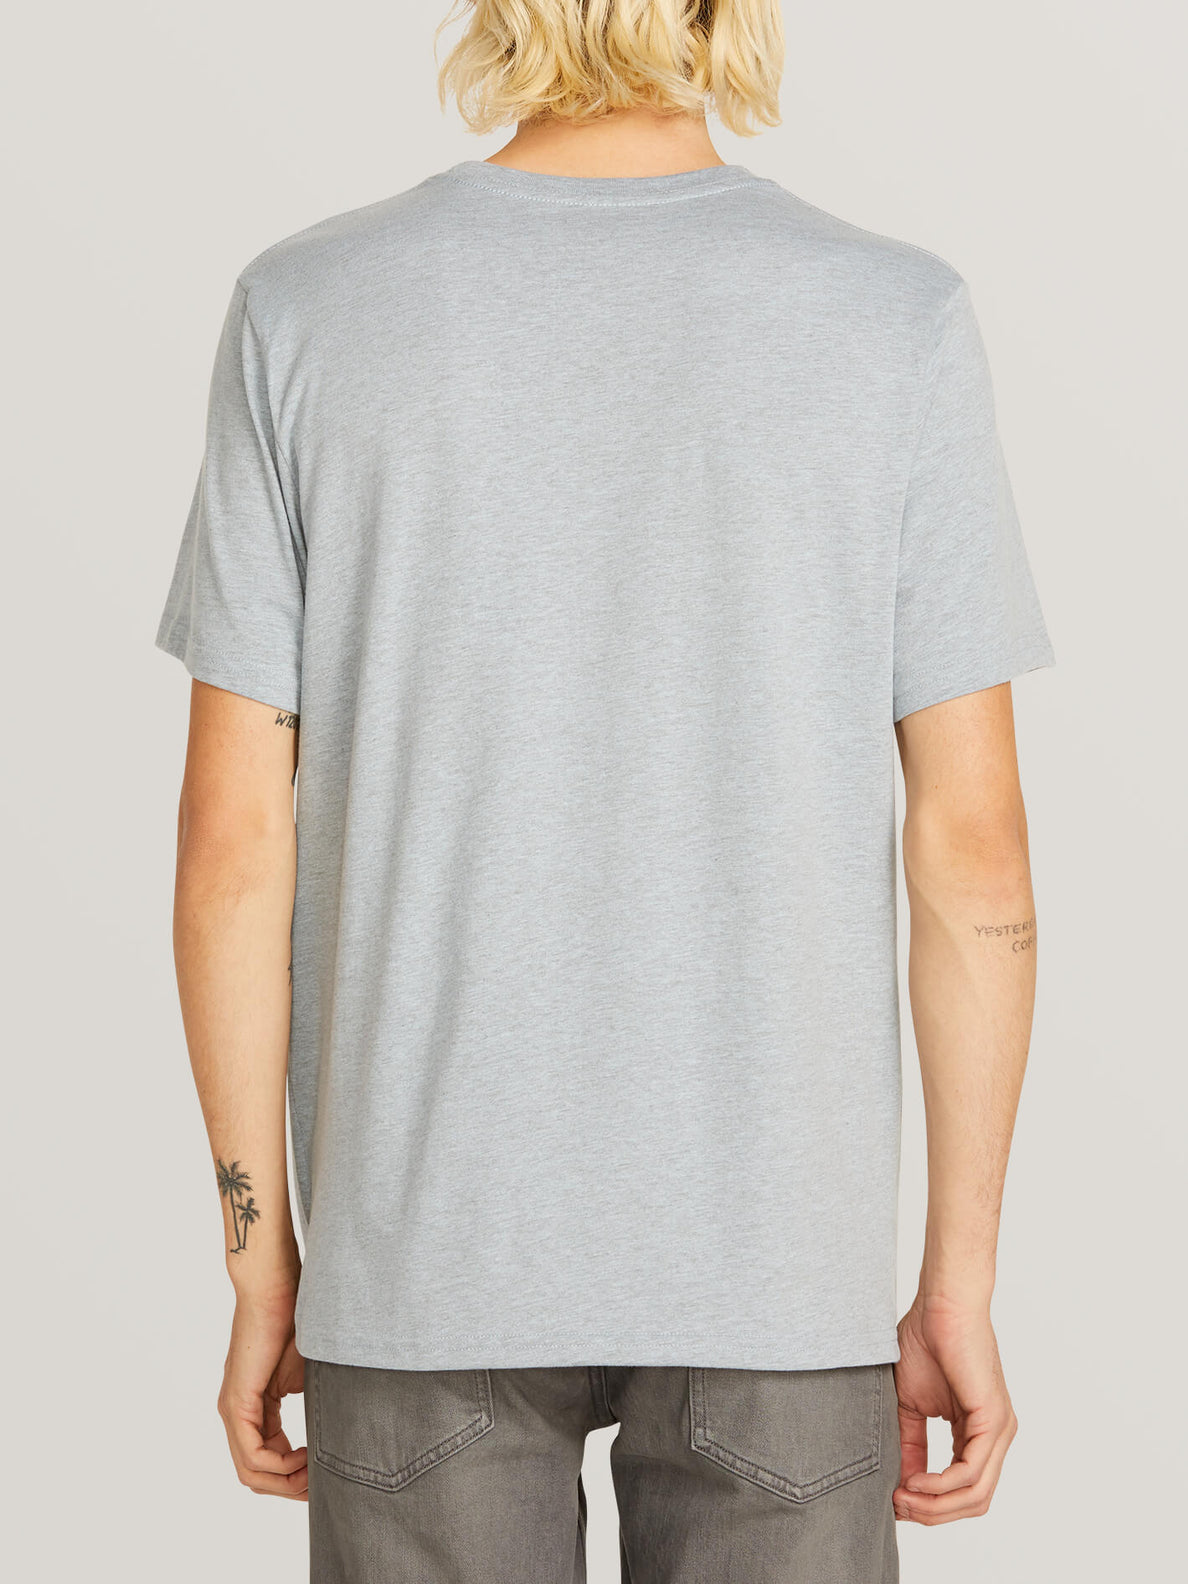 Chop Around Short Sleeve Tee In Arctic Blue, Back View